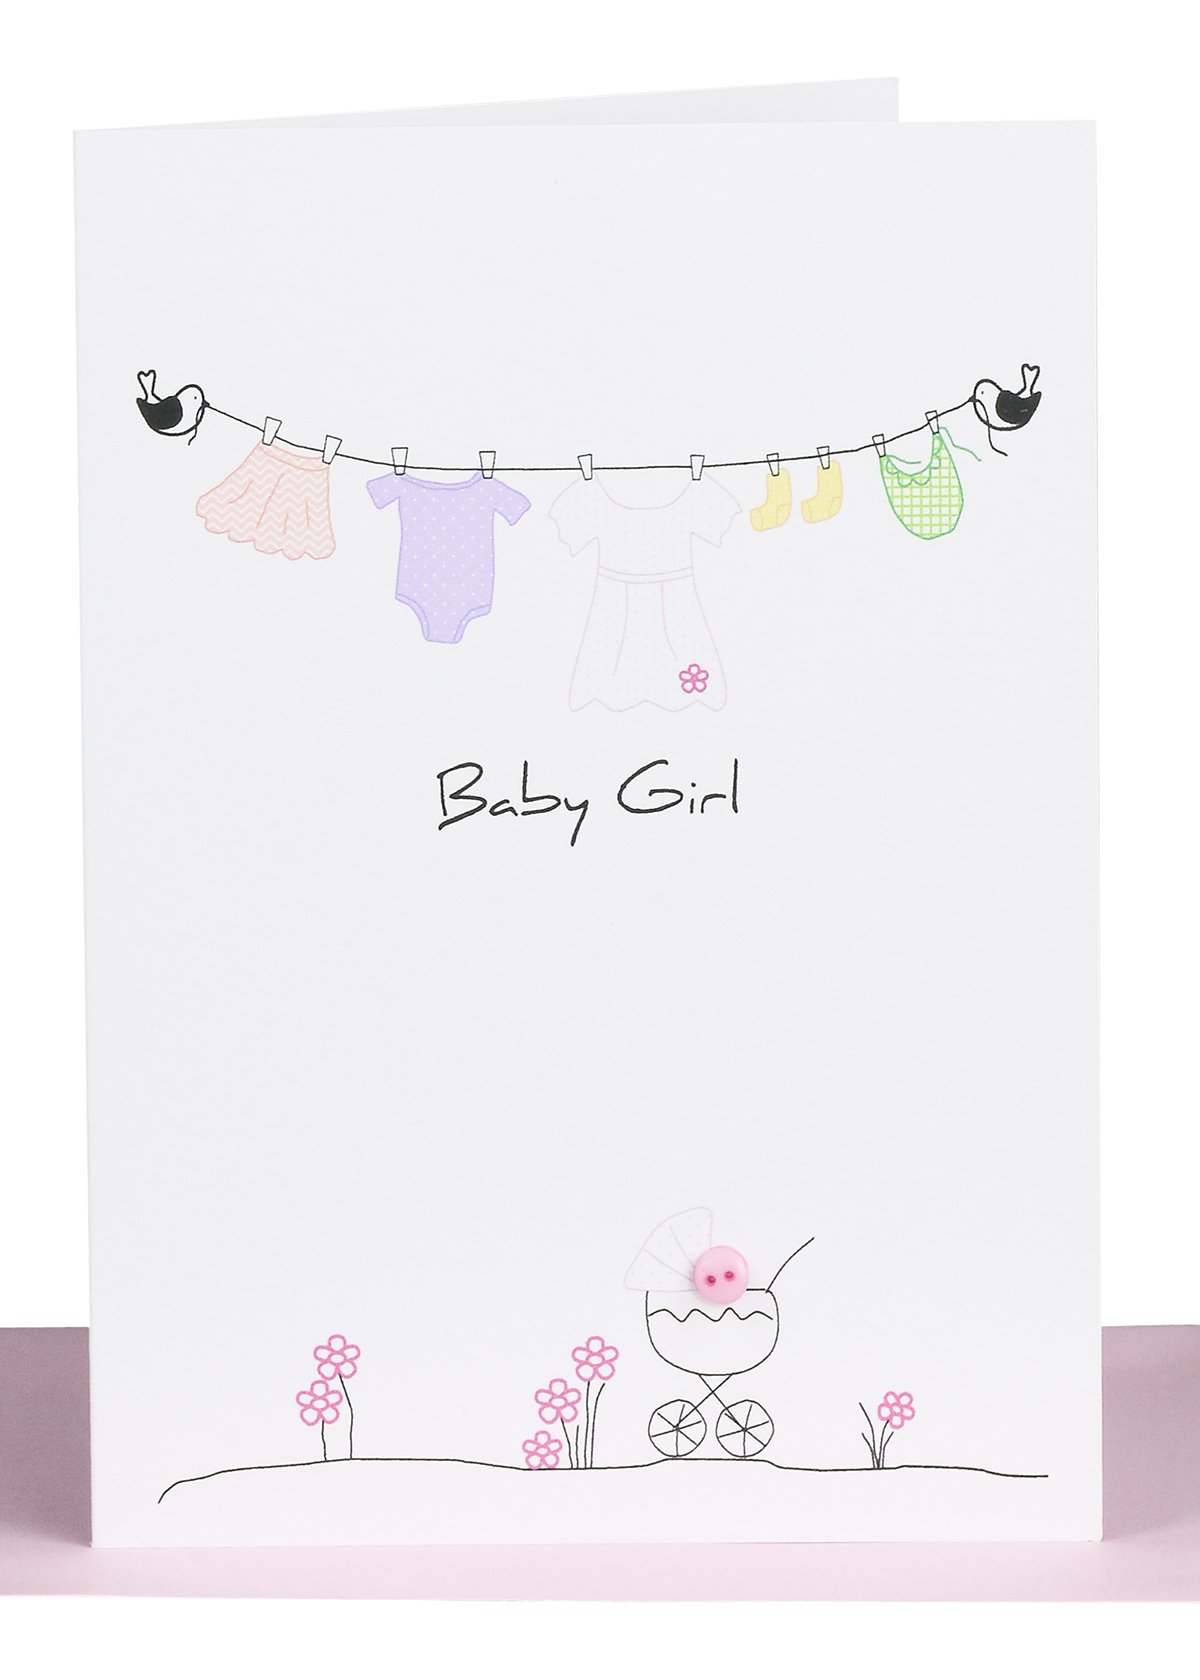 Baby girl greeting card lils wholesale handmade cards baby girl greeting card kristyandbryce Images